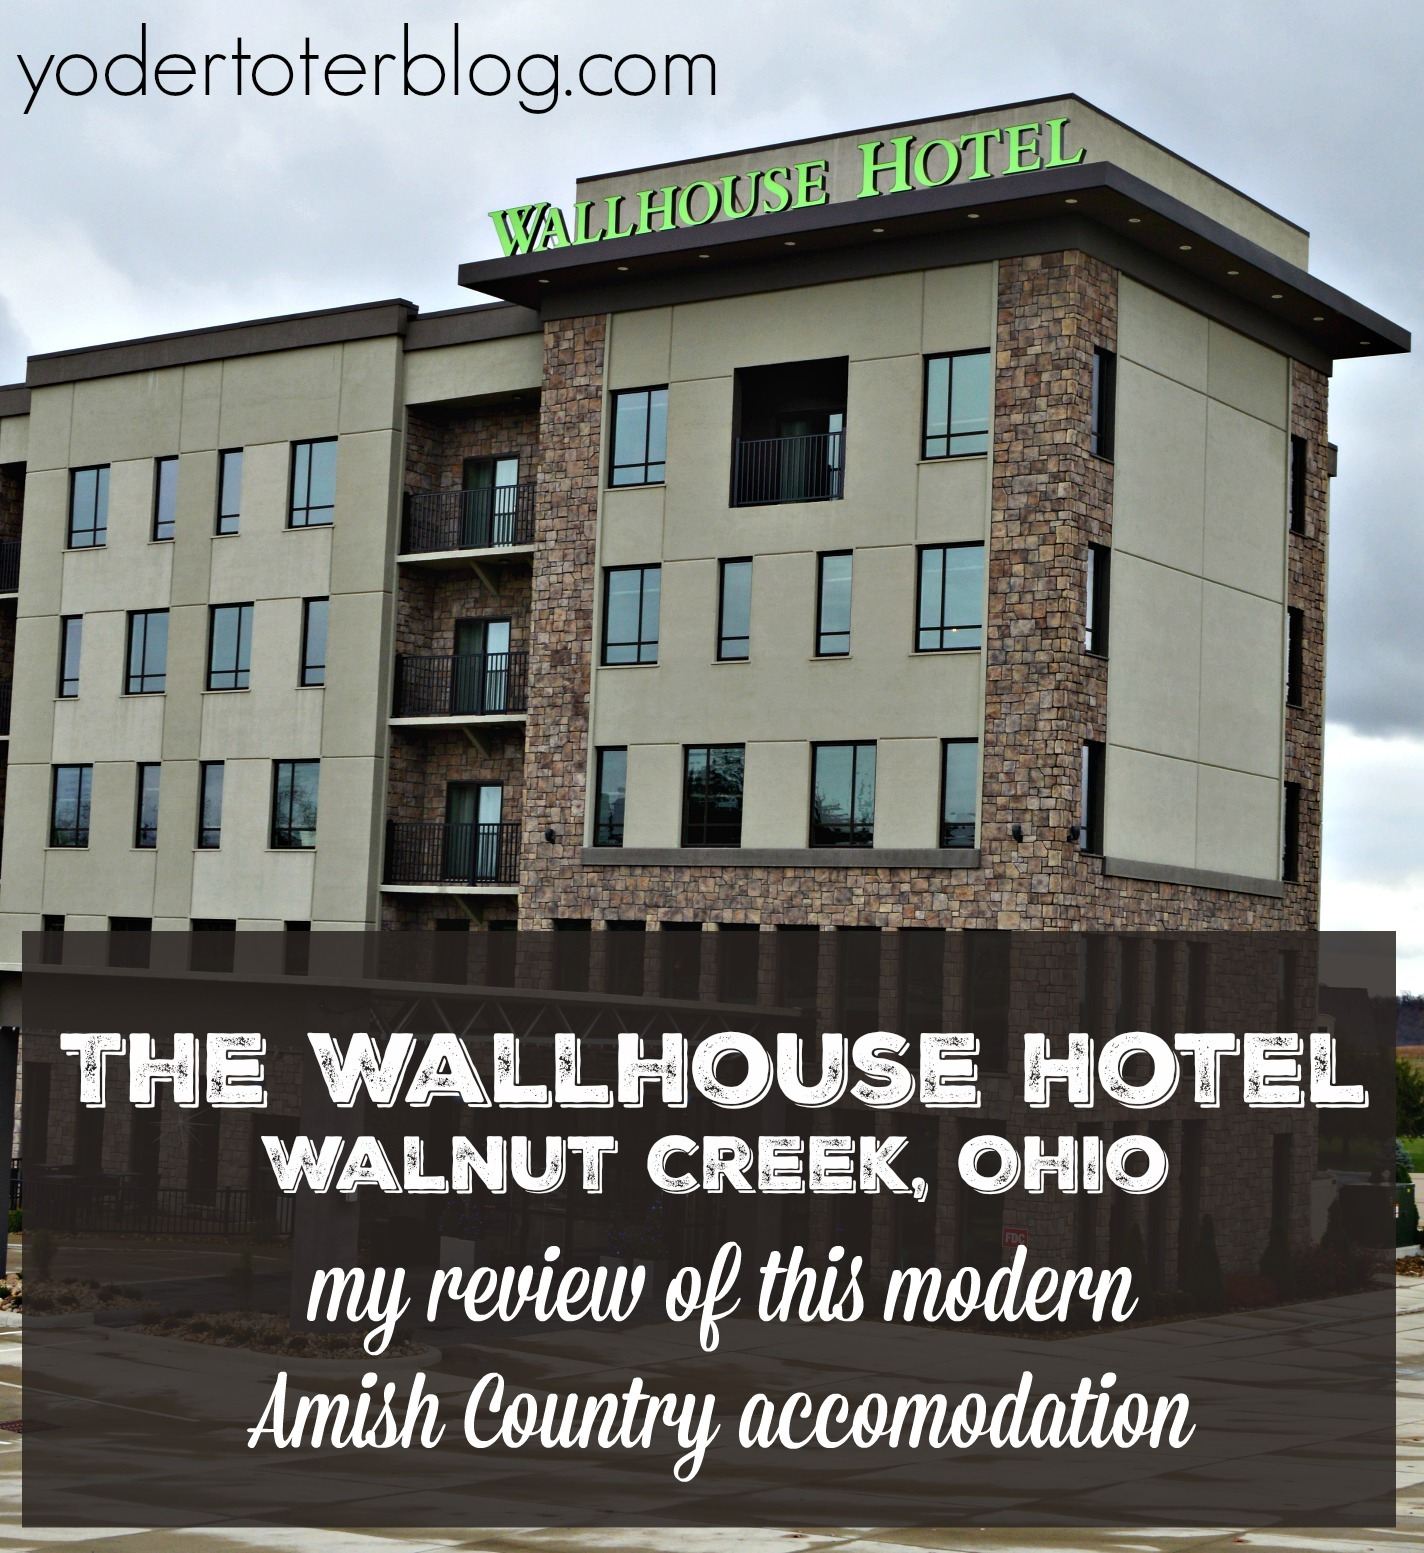 The Wallhouse Hotel Walnut Creek, Ohio Review